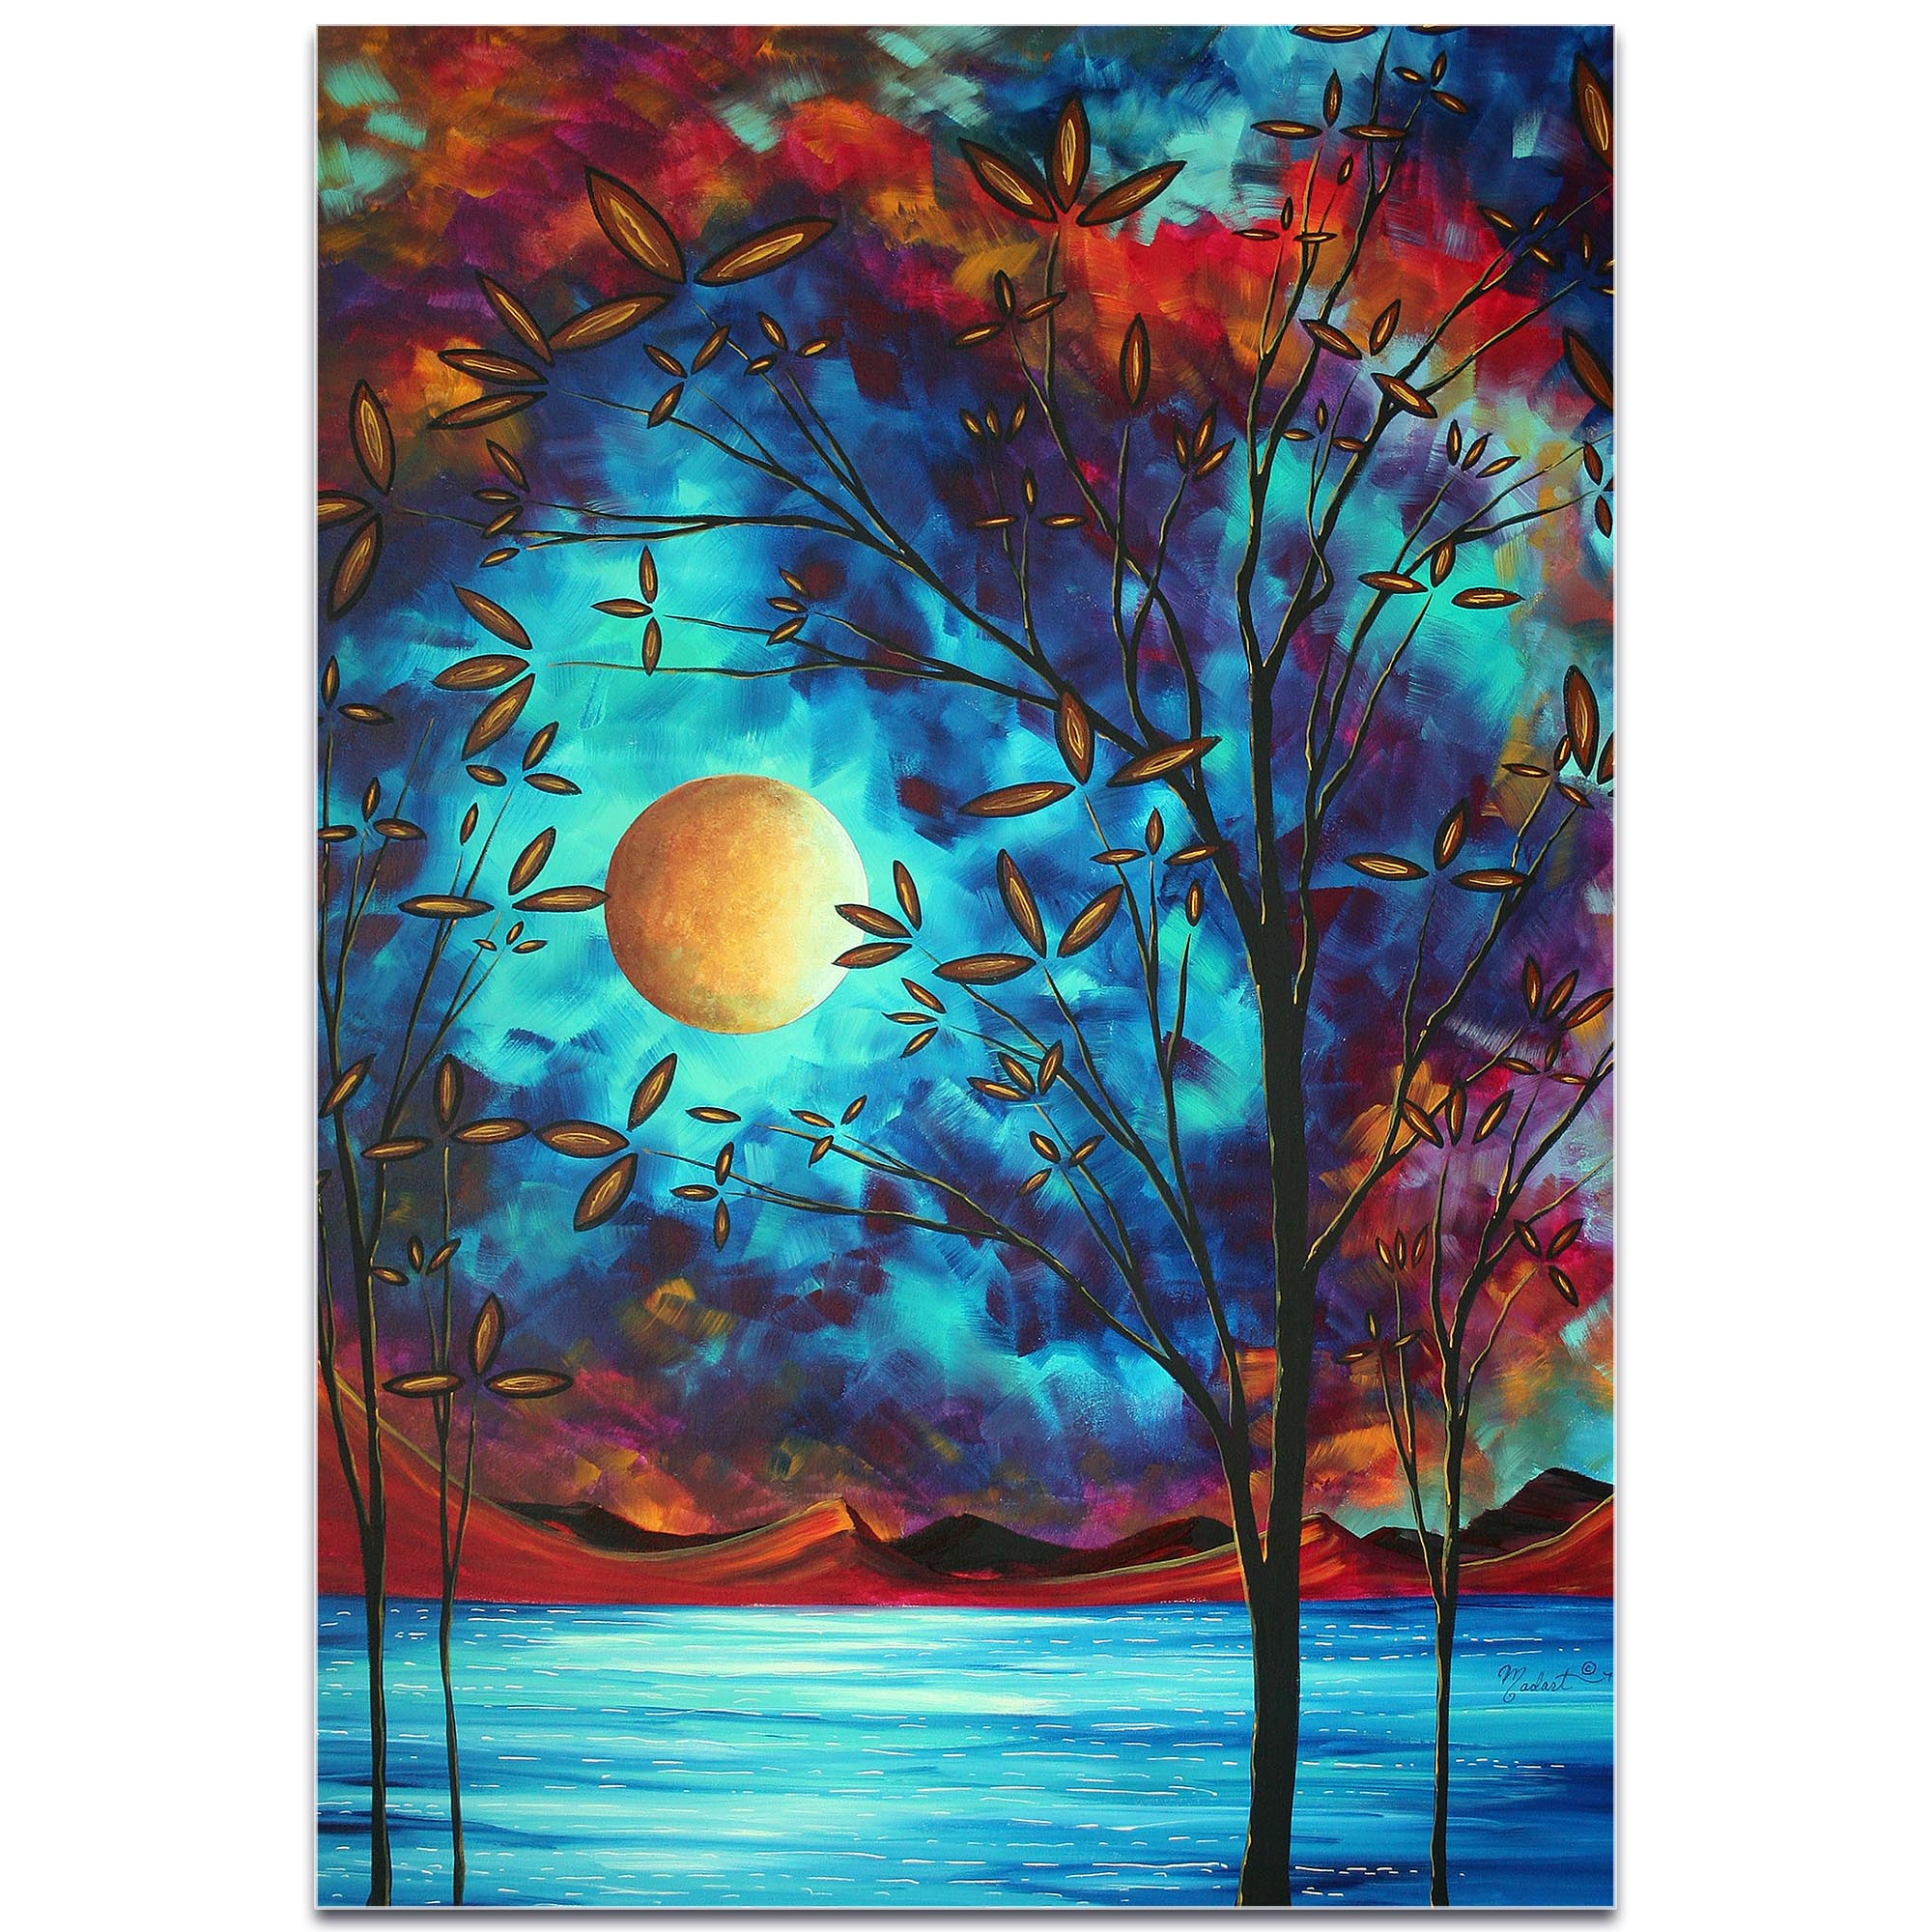 Coastal Landscape 'Visionary Delight' - Abstract Tree Art on Metal or Acrylic - Image 2